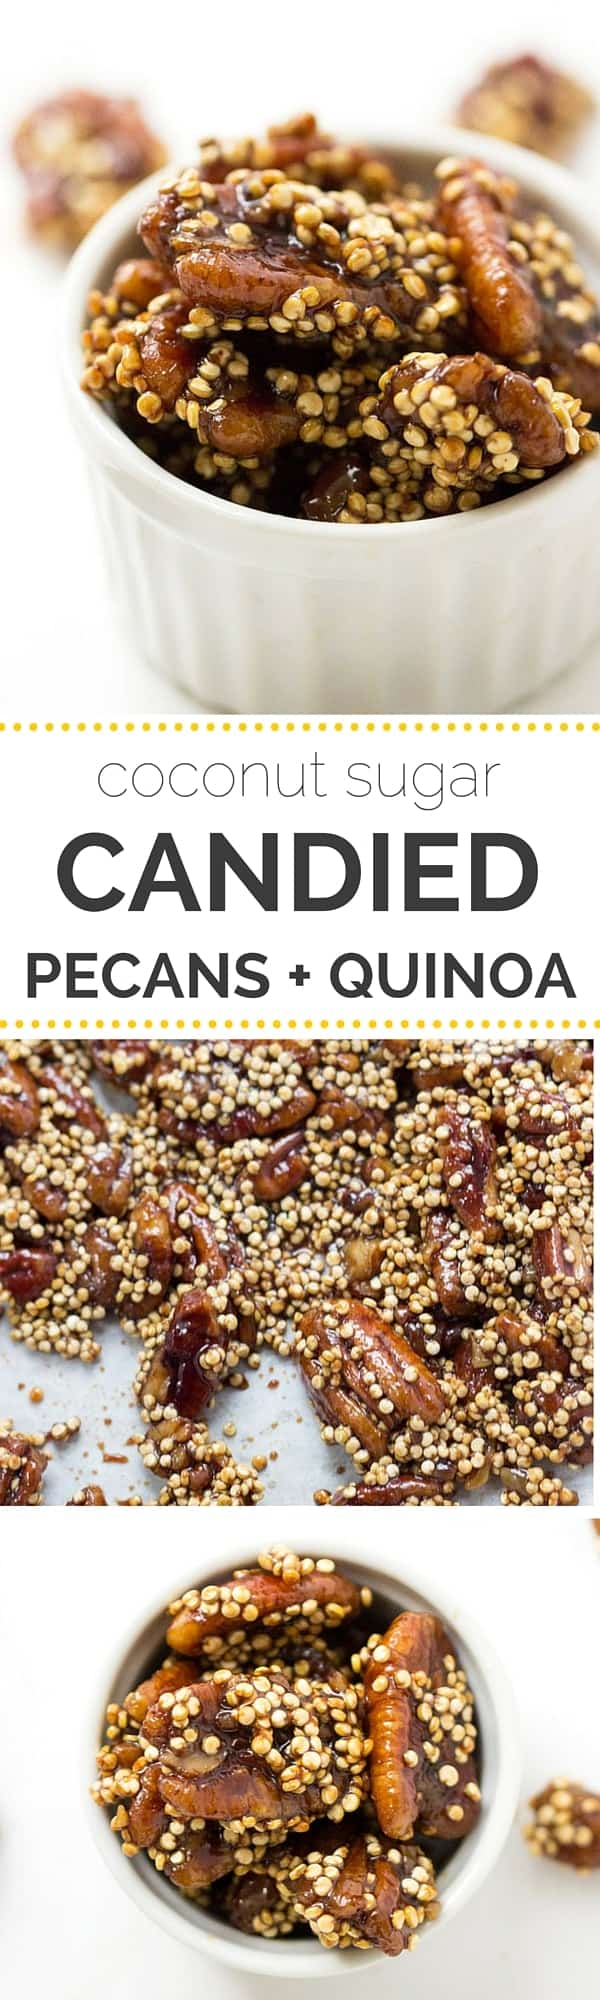 Coconut Sugar Candied Pecans + Quinoa -- a great topping for salads or enjoyed as a simple after dinner treat!